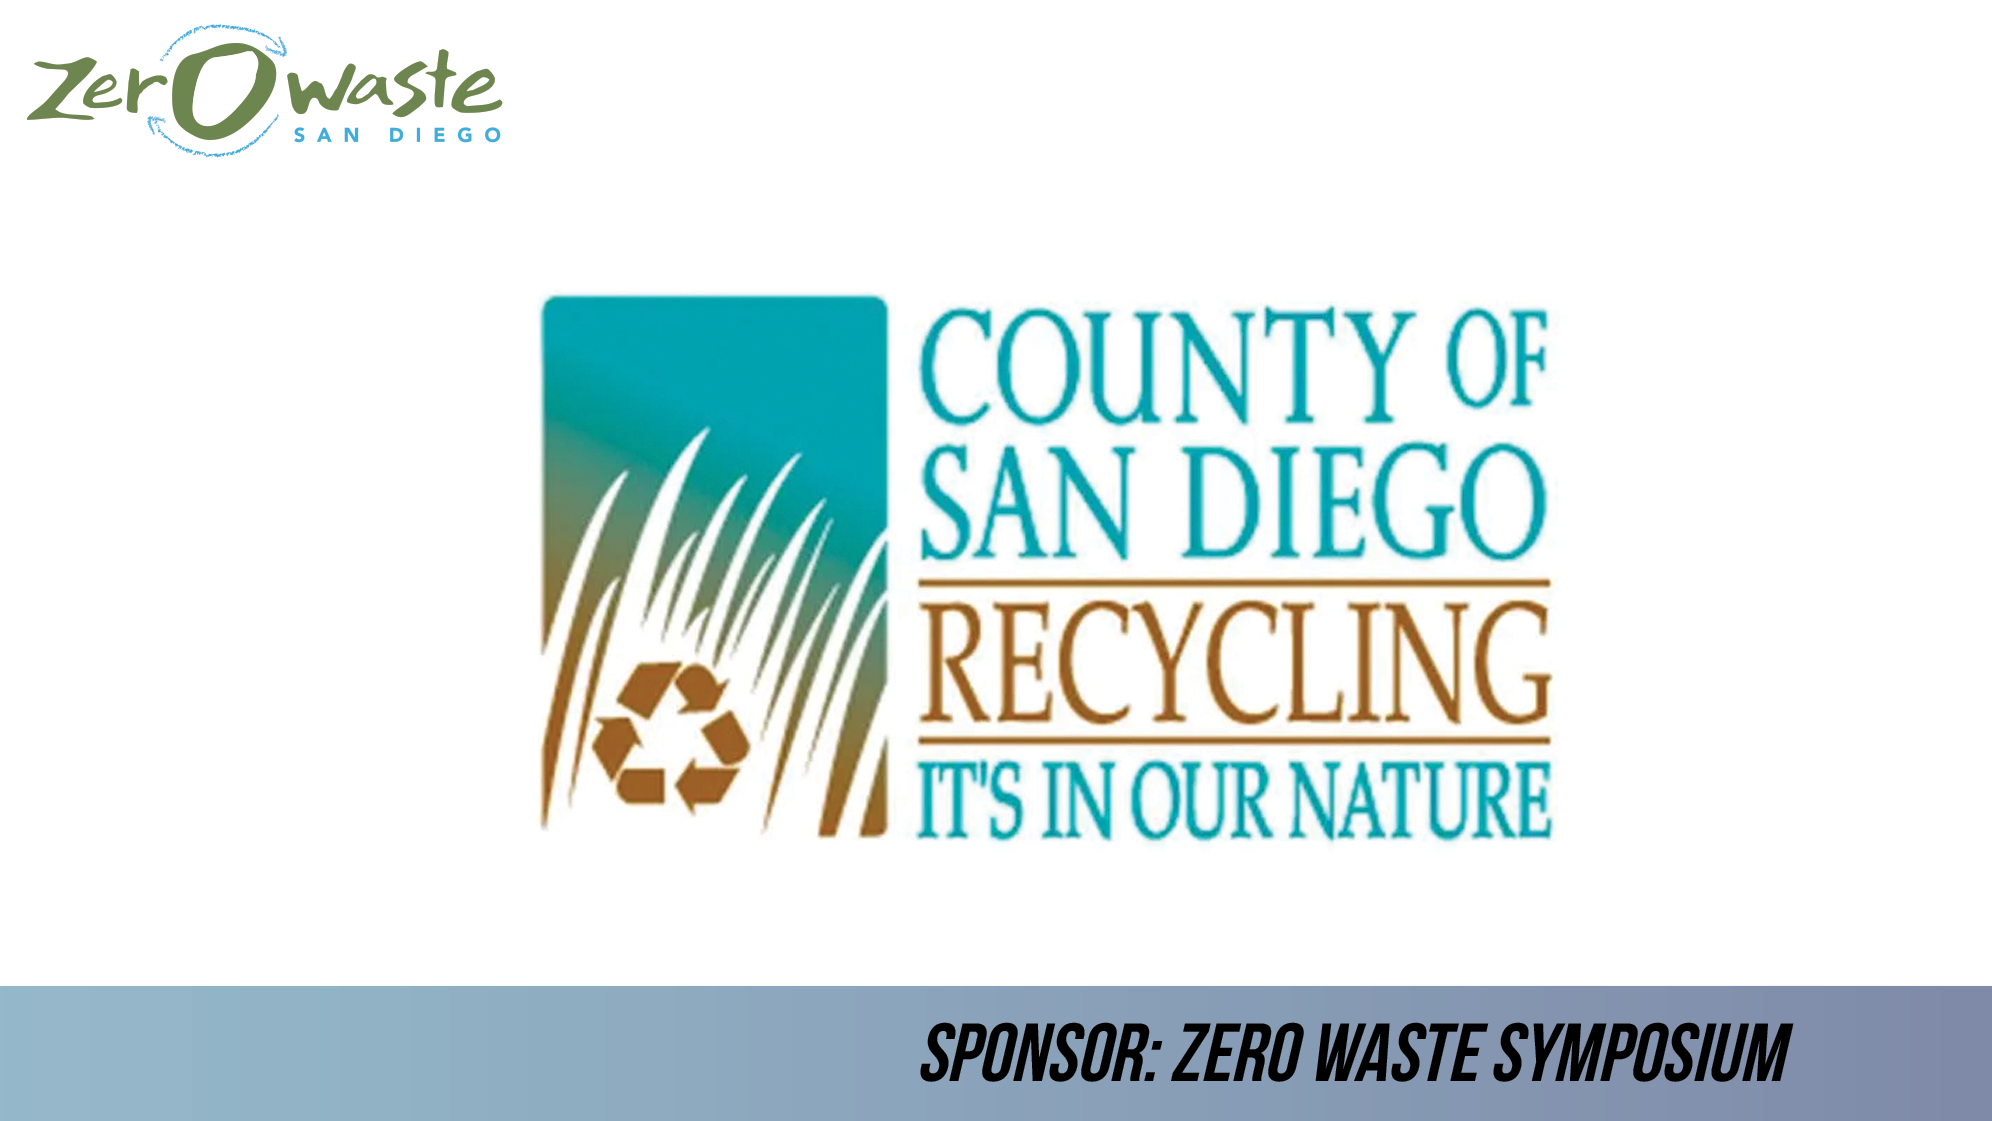 County of San Diego Recycling